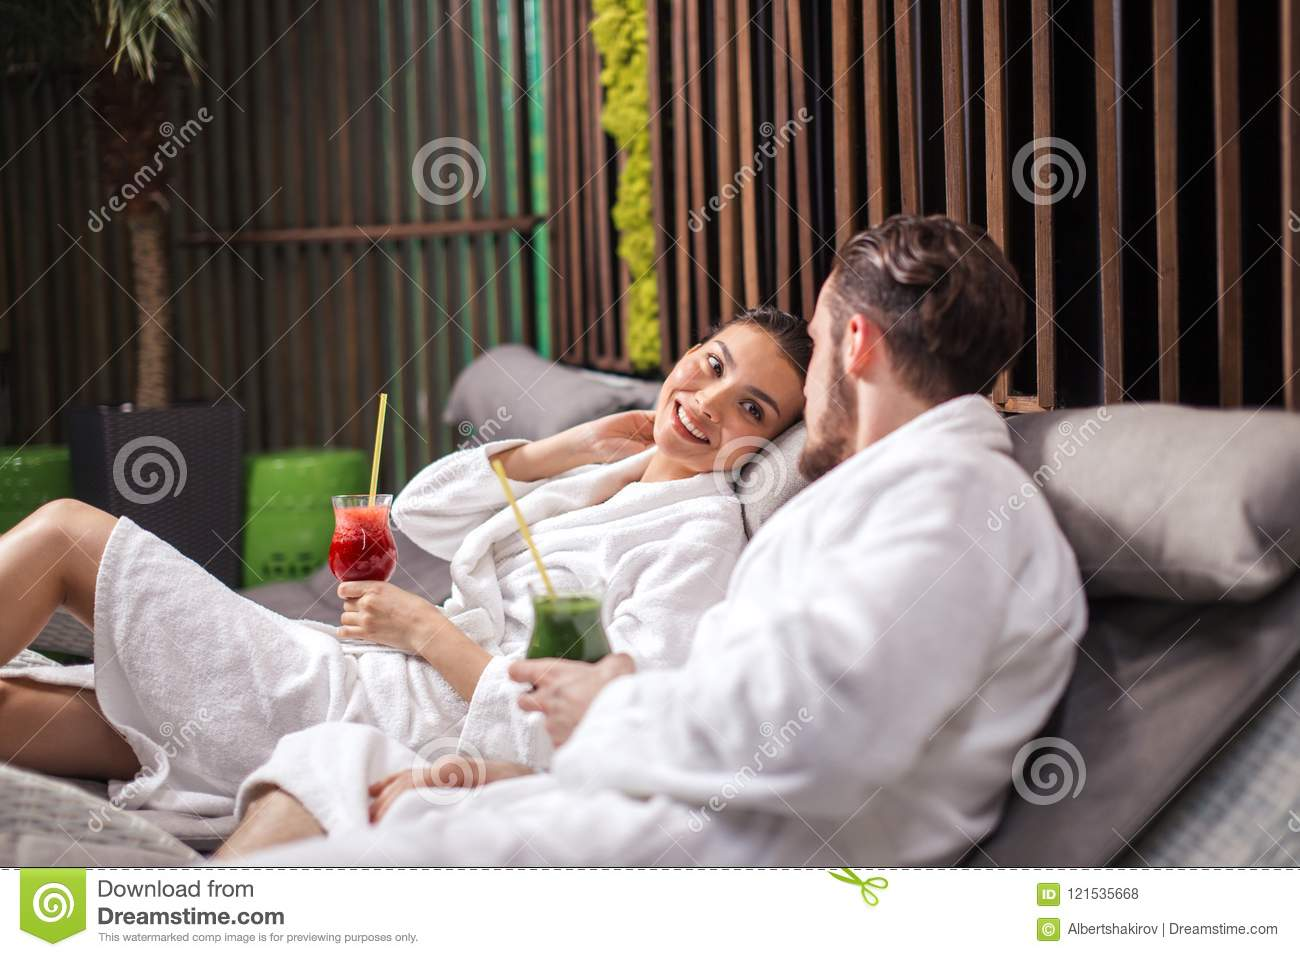 Just married couple enjoying spa wellness treatments indoors